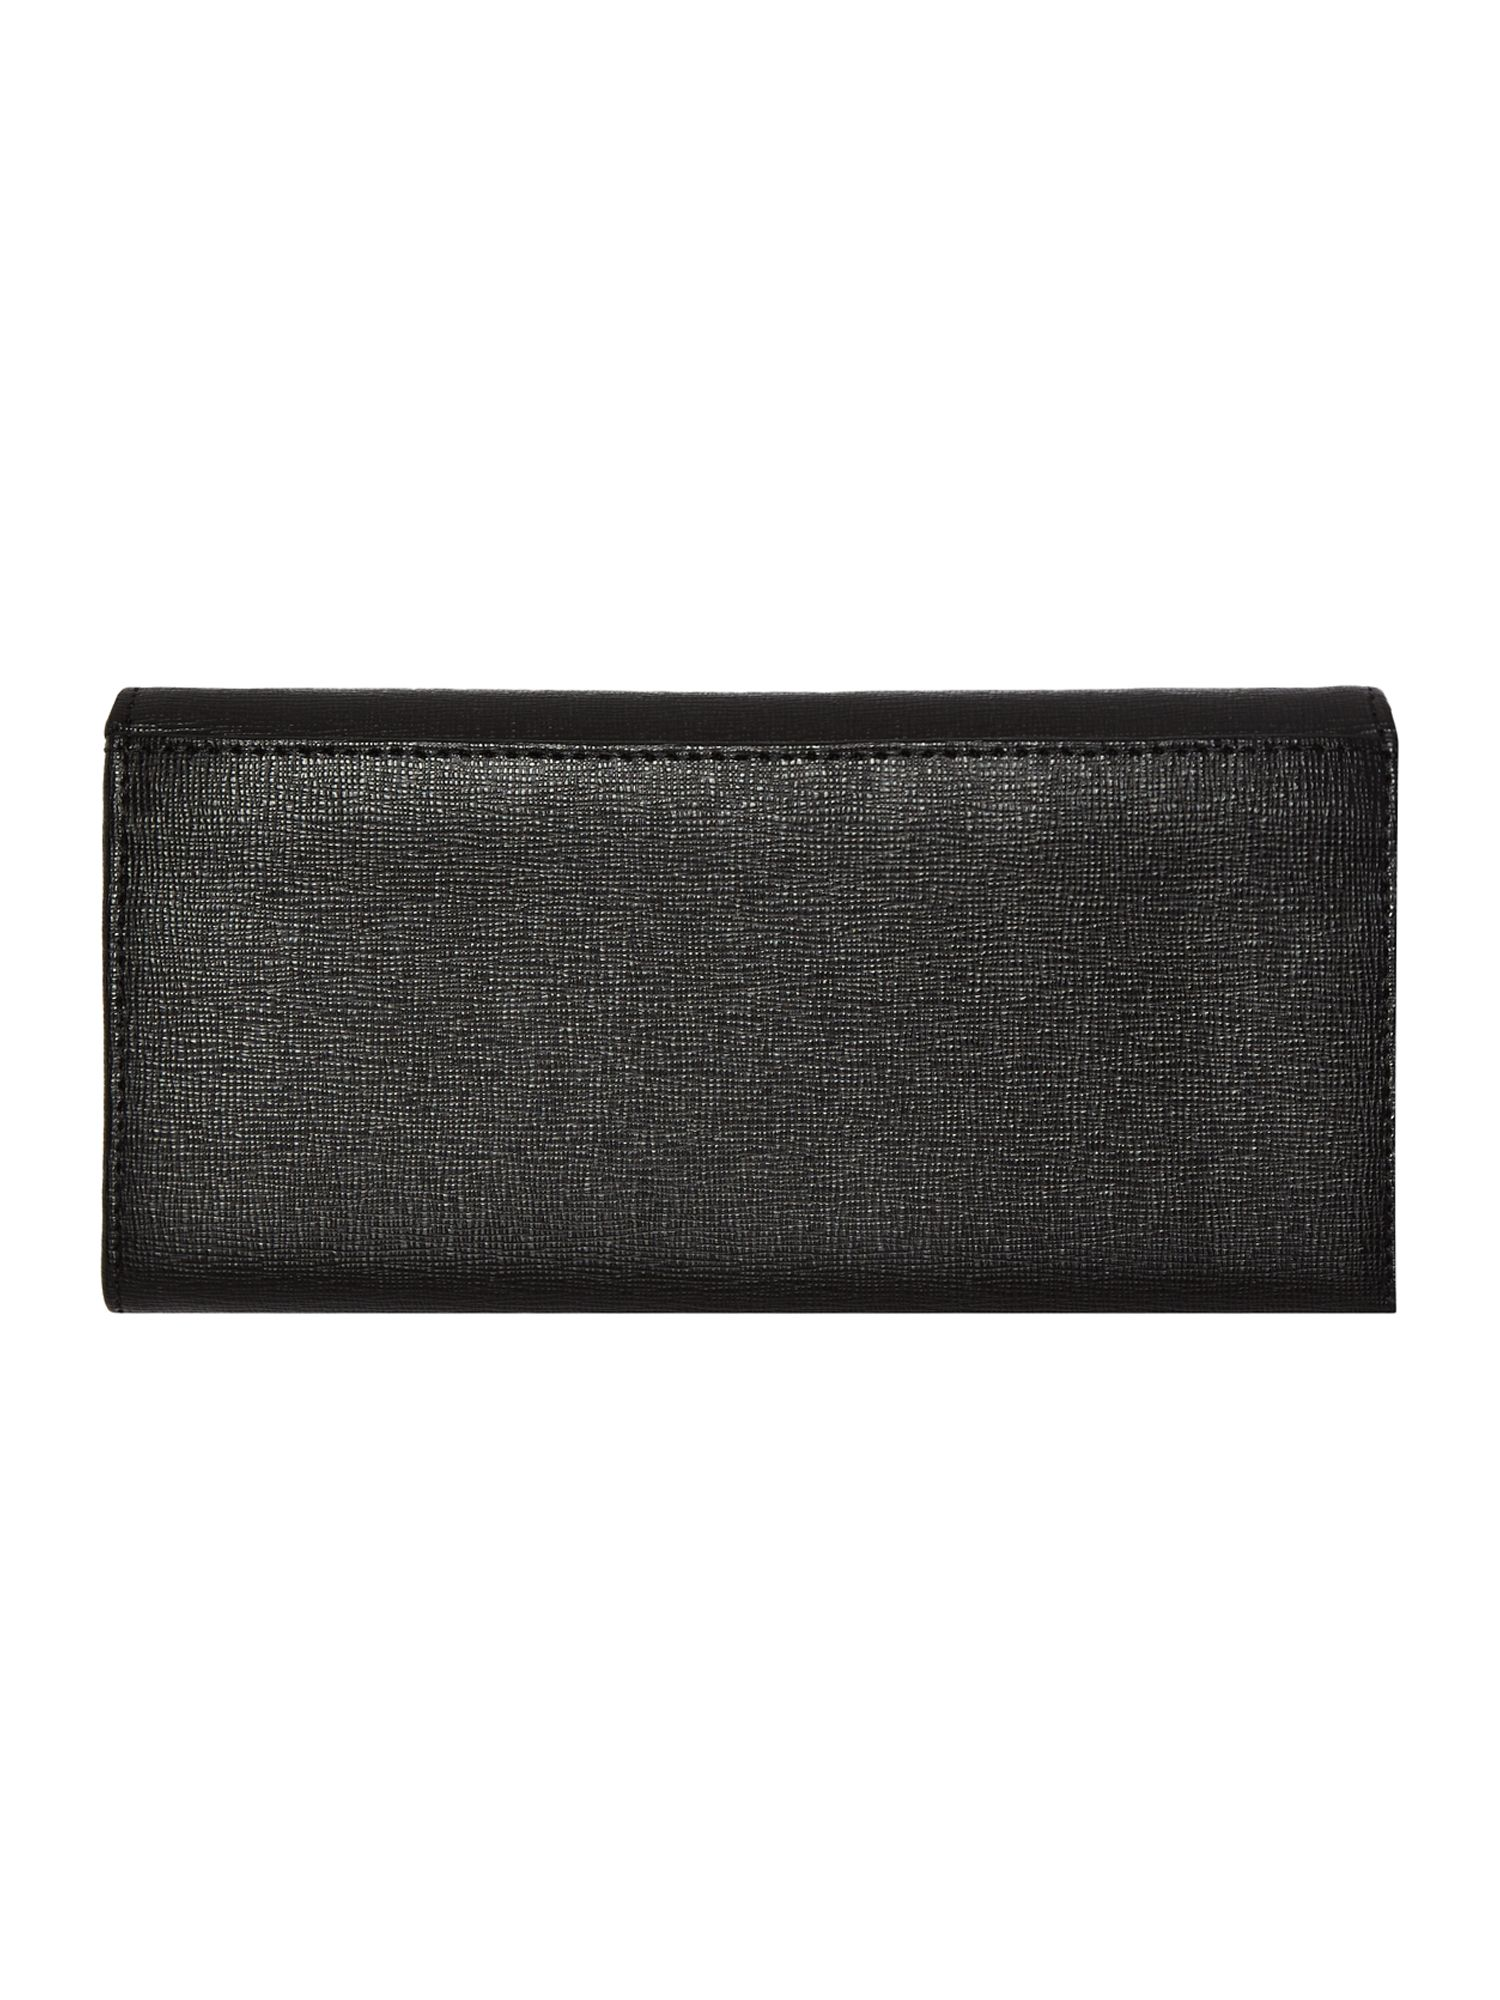 Babylon black large flap over purse